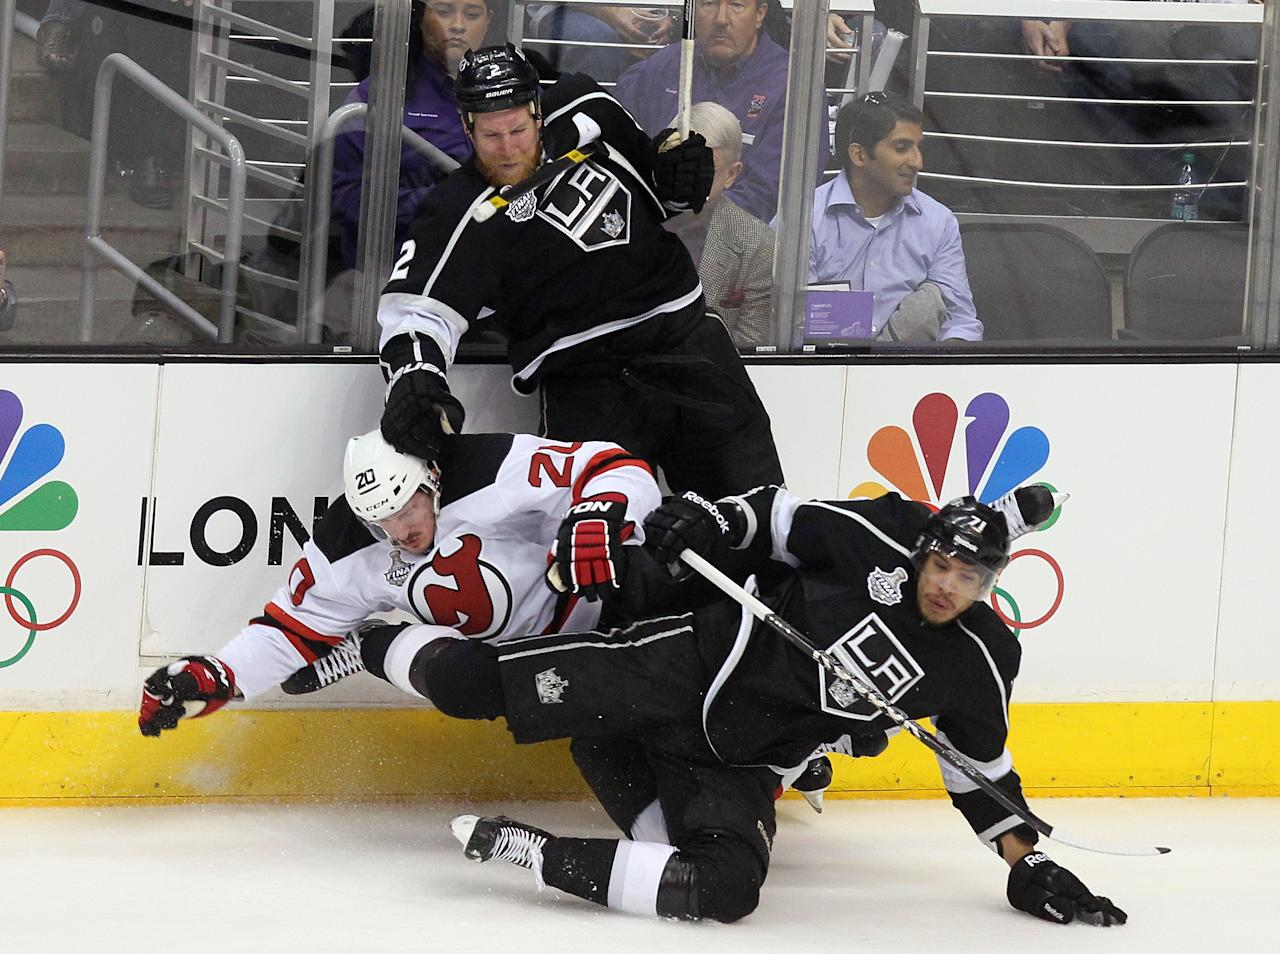 LOS ANGELES, CA - JUNE 11:  Matt Greene #2 and Jordan Nolan #71 of the Los Angeles Kings check Ryan Carter #20 of the New Jersey Devils in first period of Game Six of the 2012 Stanley Cup Final at Staples Center on June 11, 2012 in Los Angeles, California.  (Photo by Jeff Gross/Getty Images)